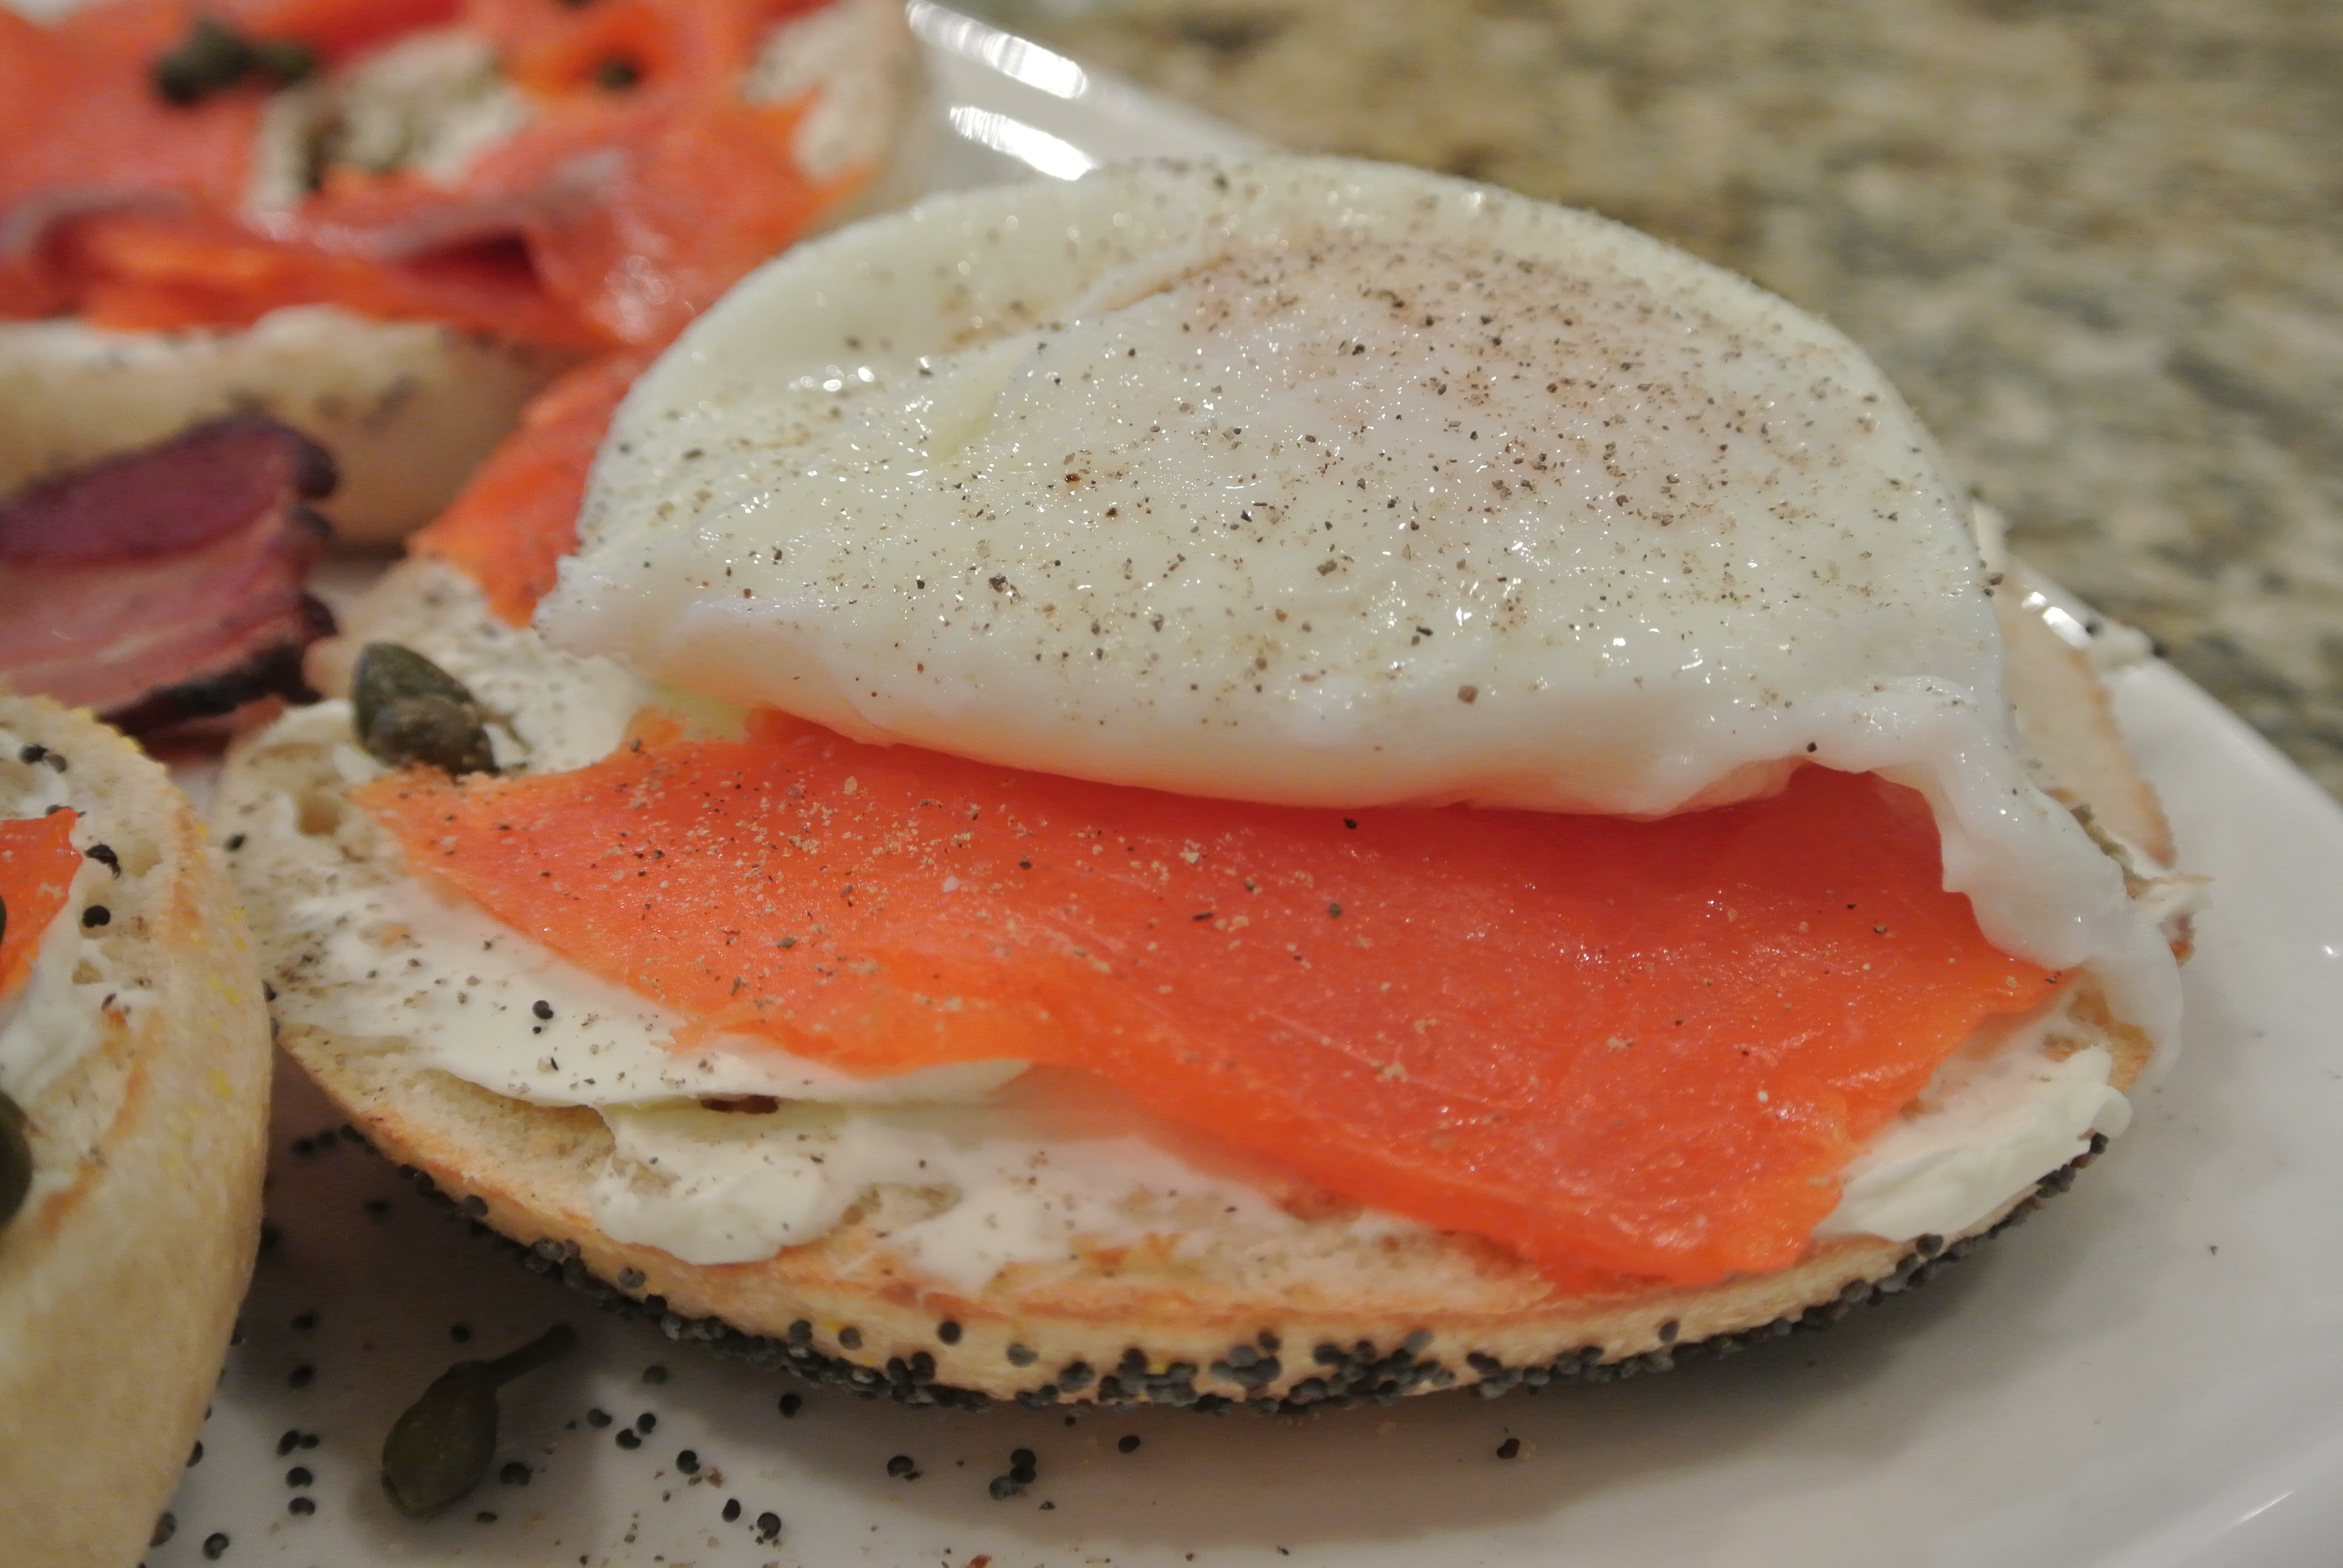 Sugar Bath And Then Cold Smoked Also Referred To As Nova Lox;